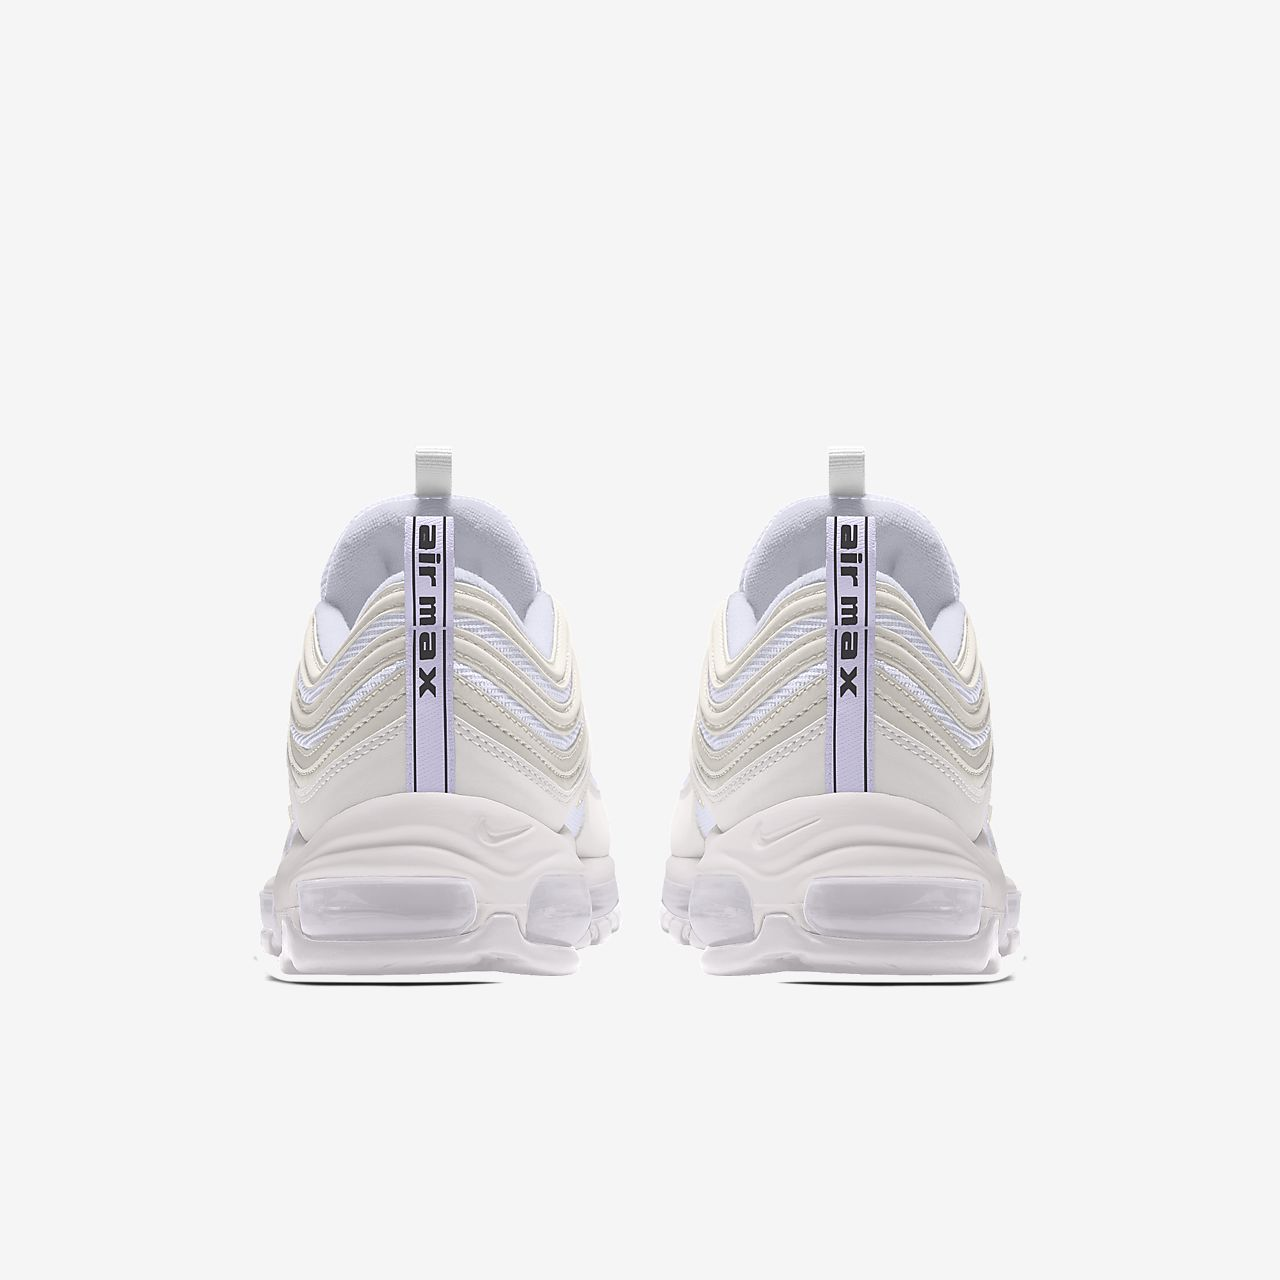 Chaussure personnalisable Nike Air Max 97 By You pour Homme